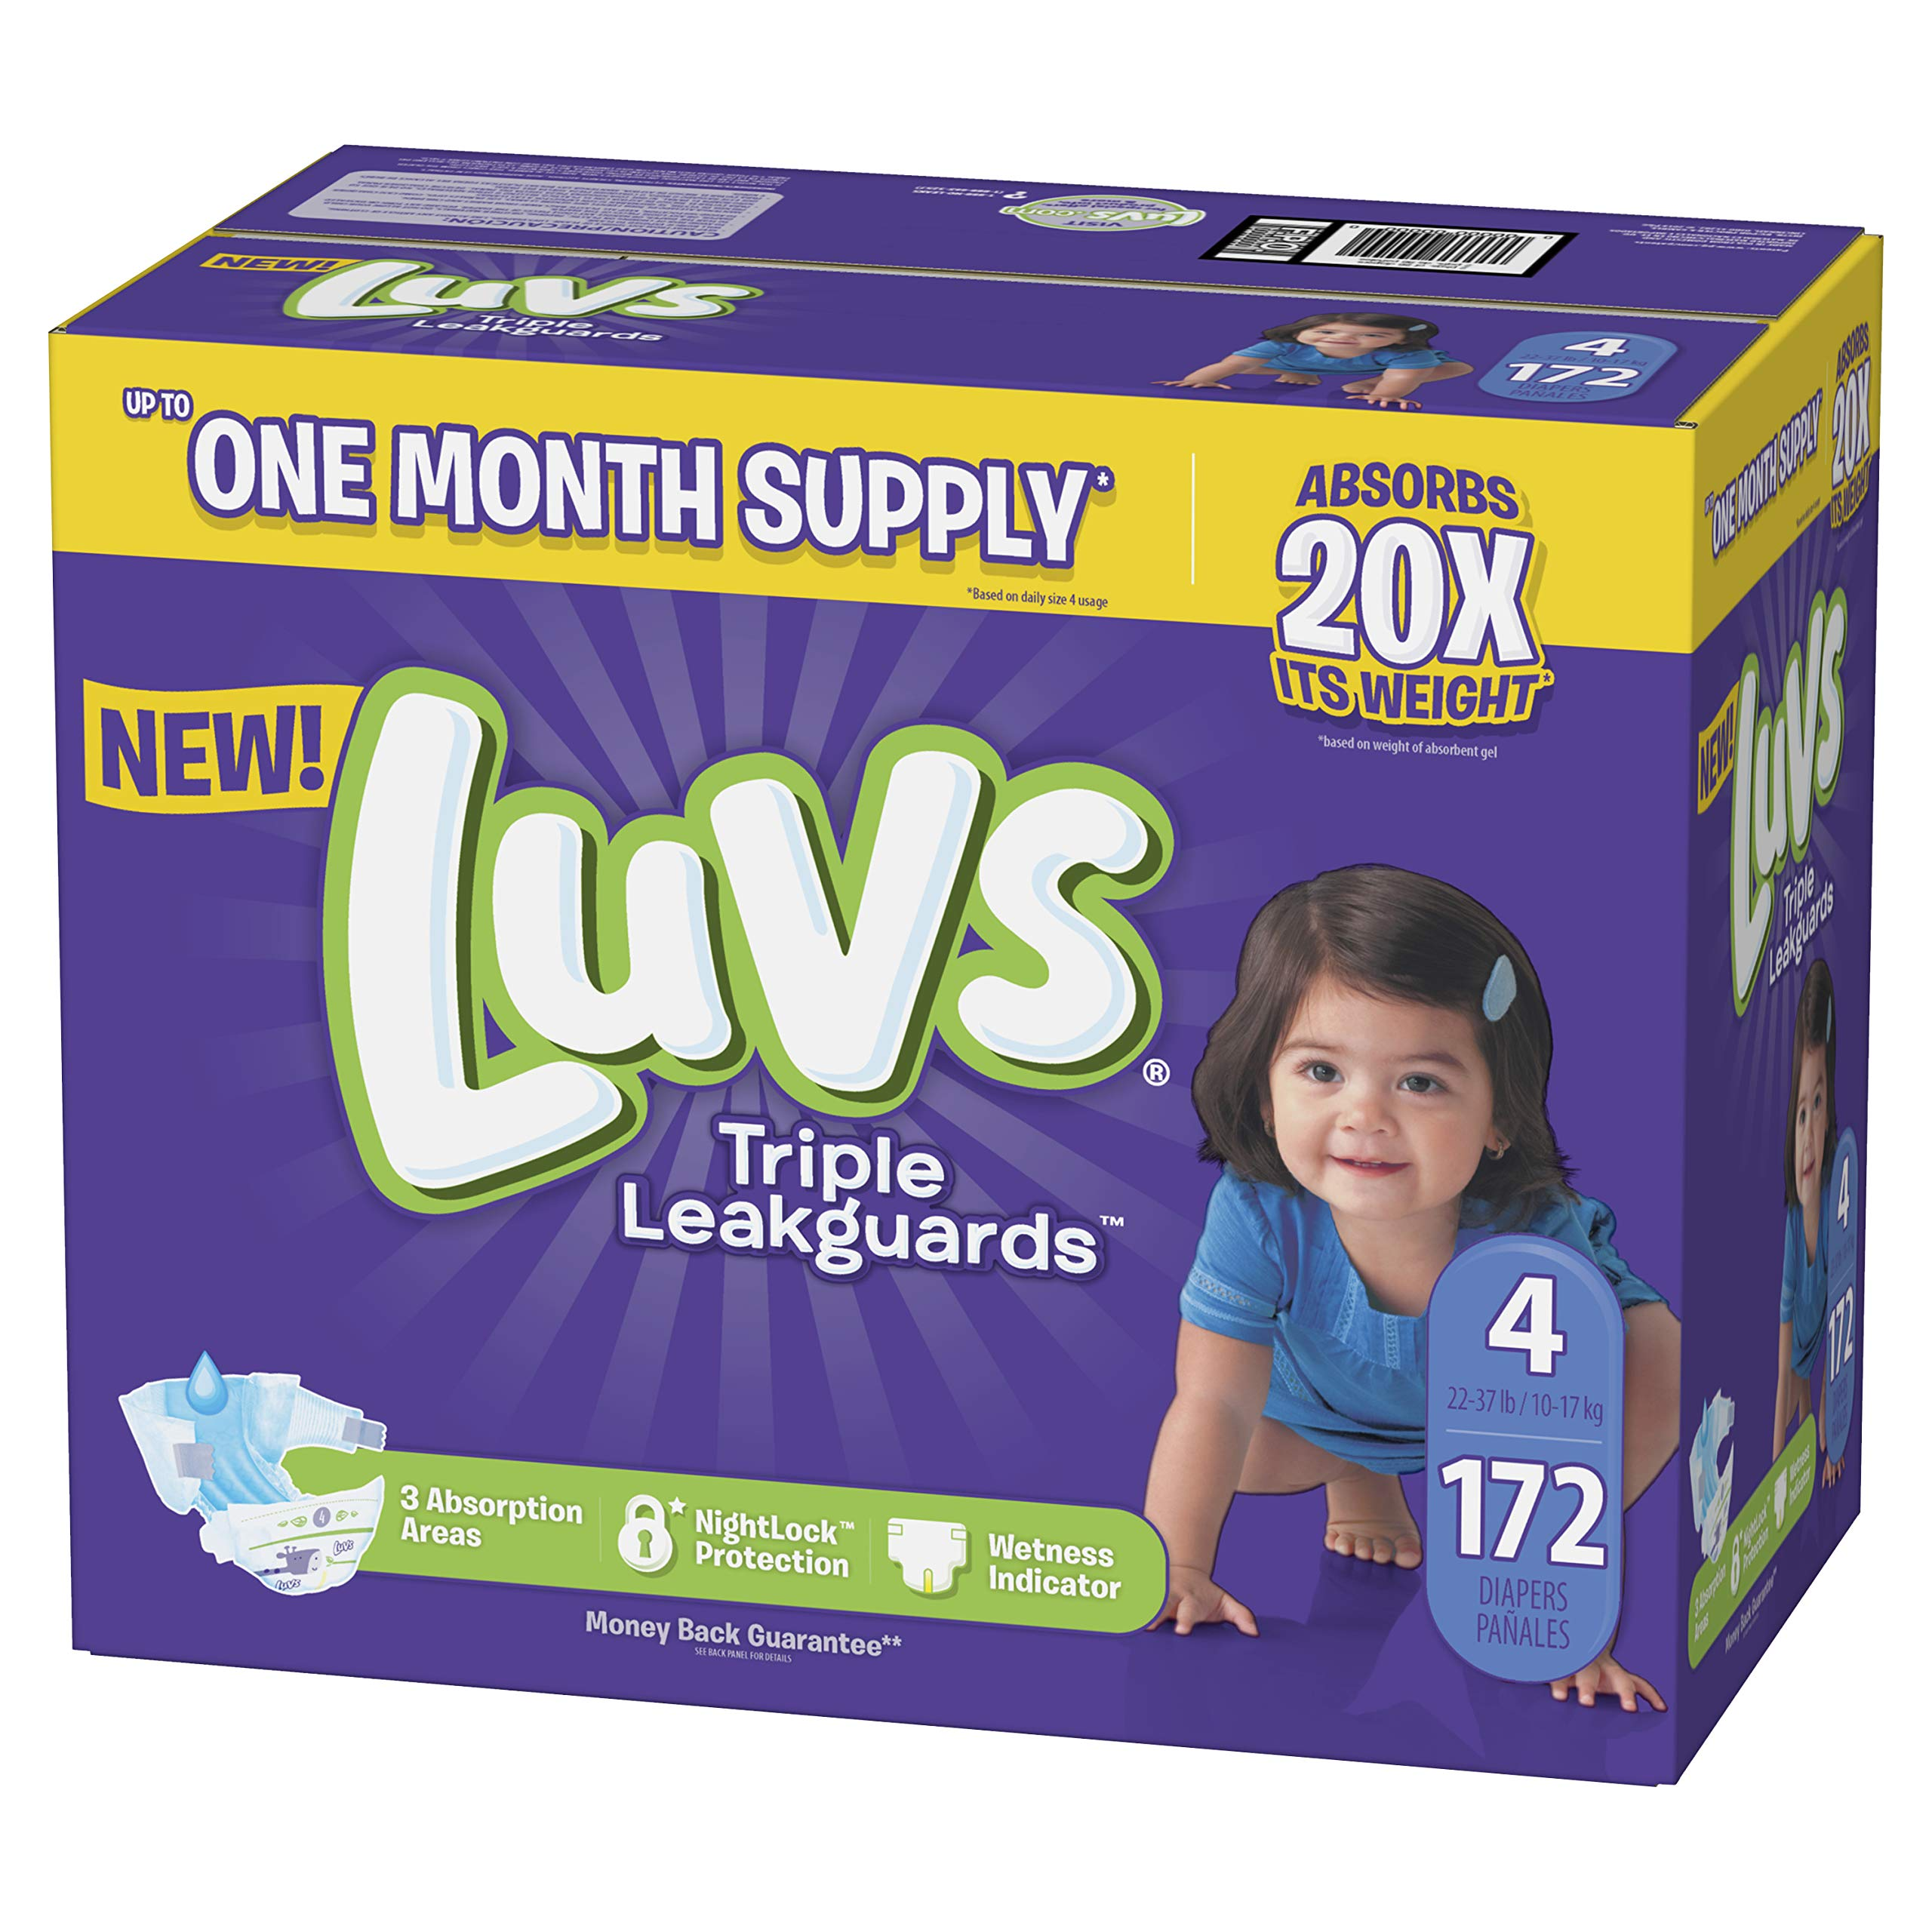 Diapers Size 4, 172 Count - Luvs Ultra Leakguards Disposable Baby Diapers, ONE MONTH SUPPLY (Packaging May Vary) by Luvs (LUVSD)